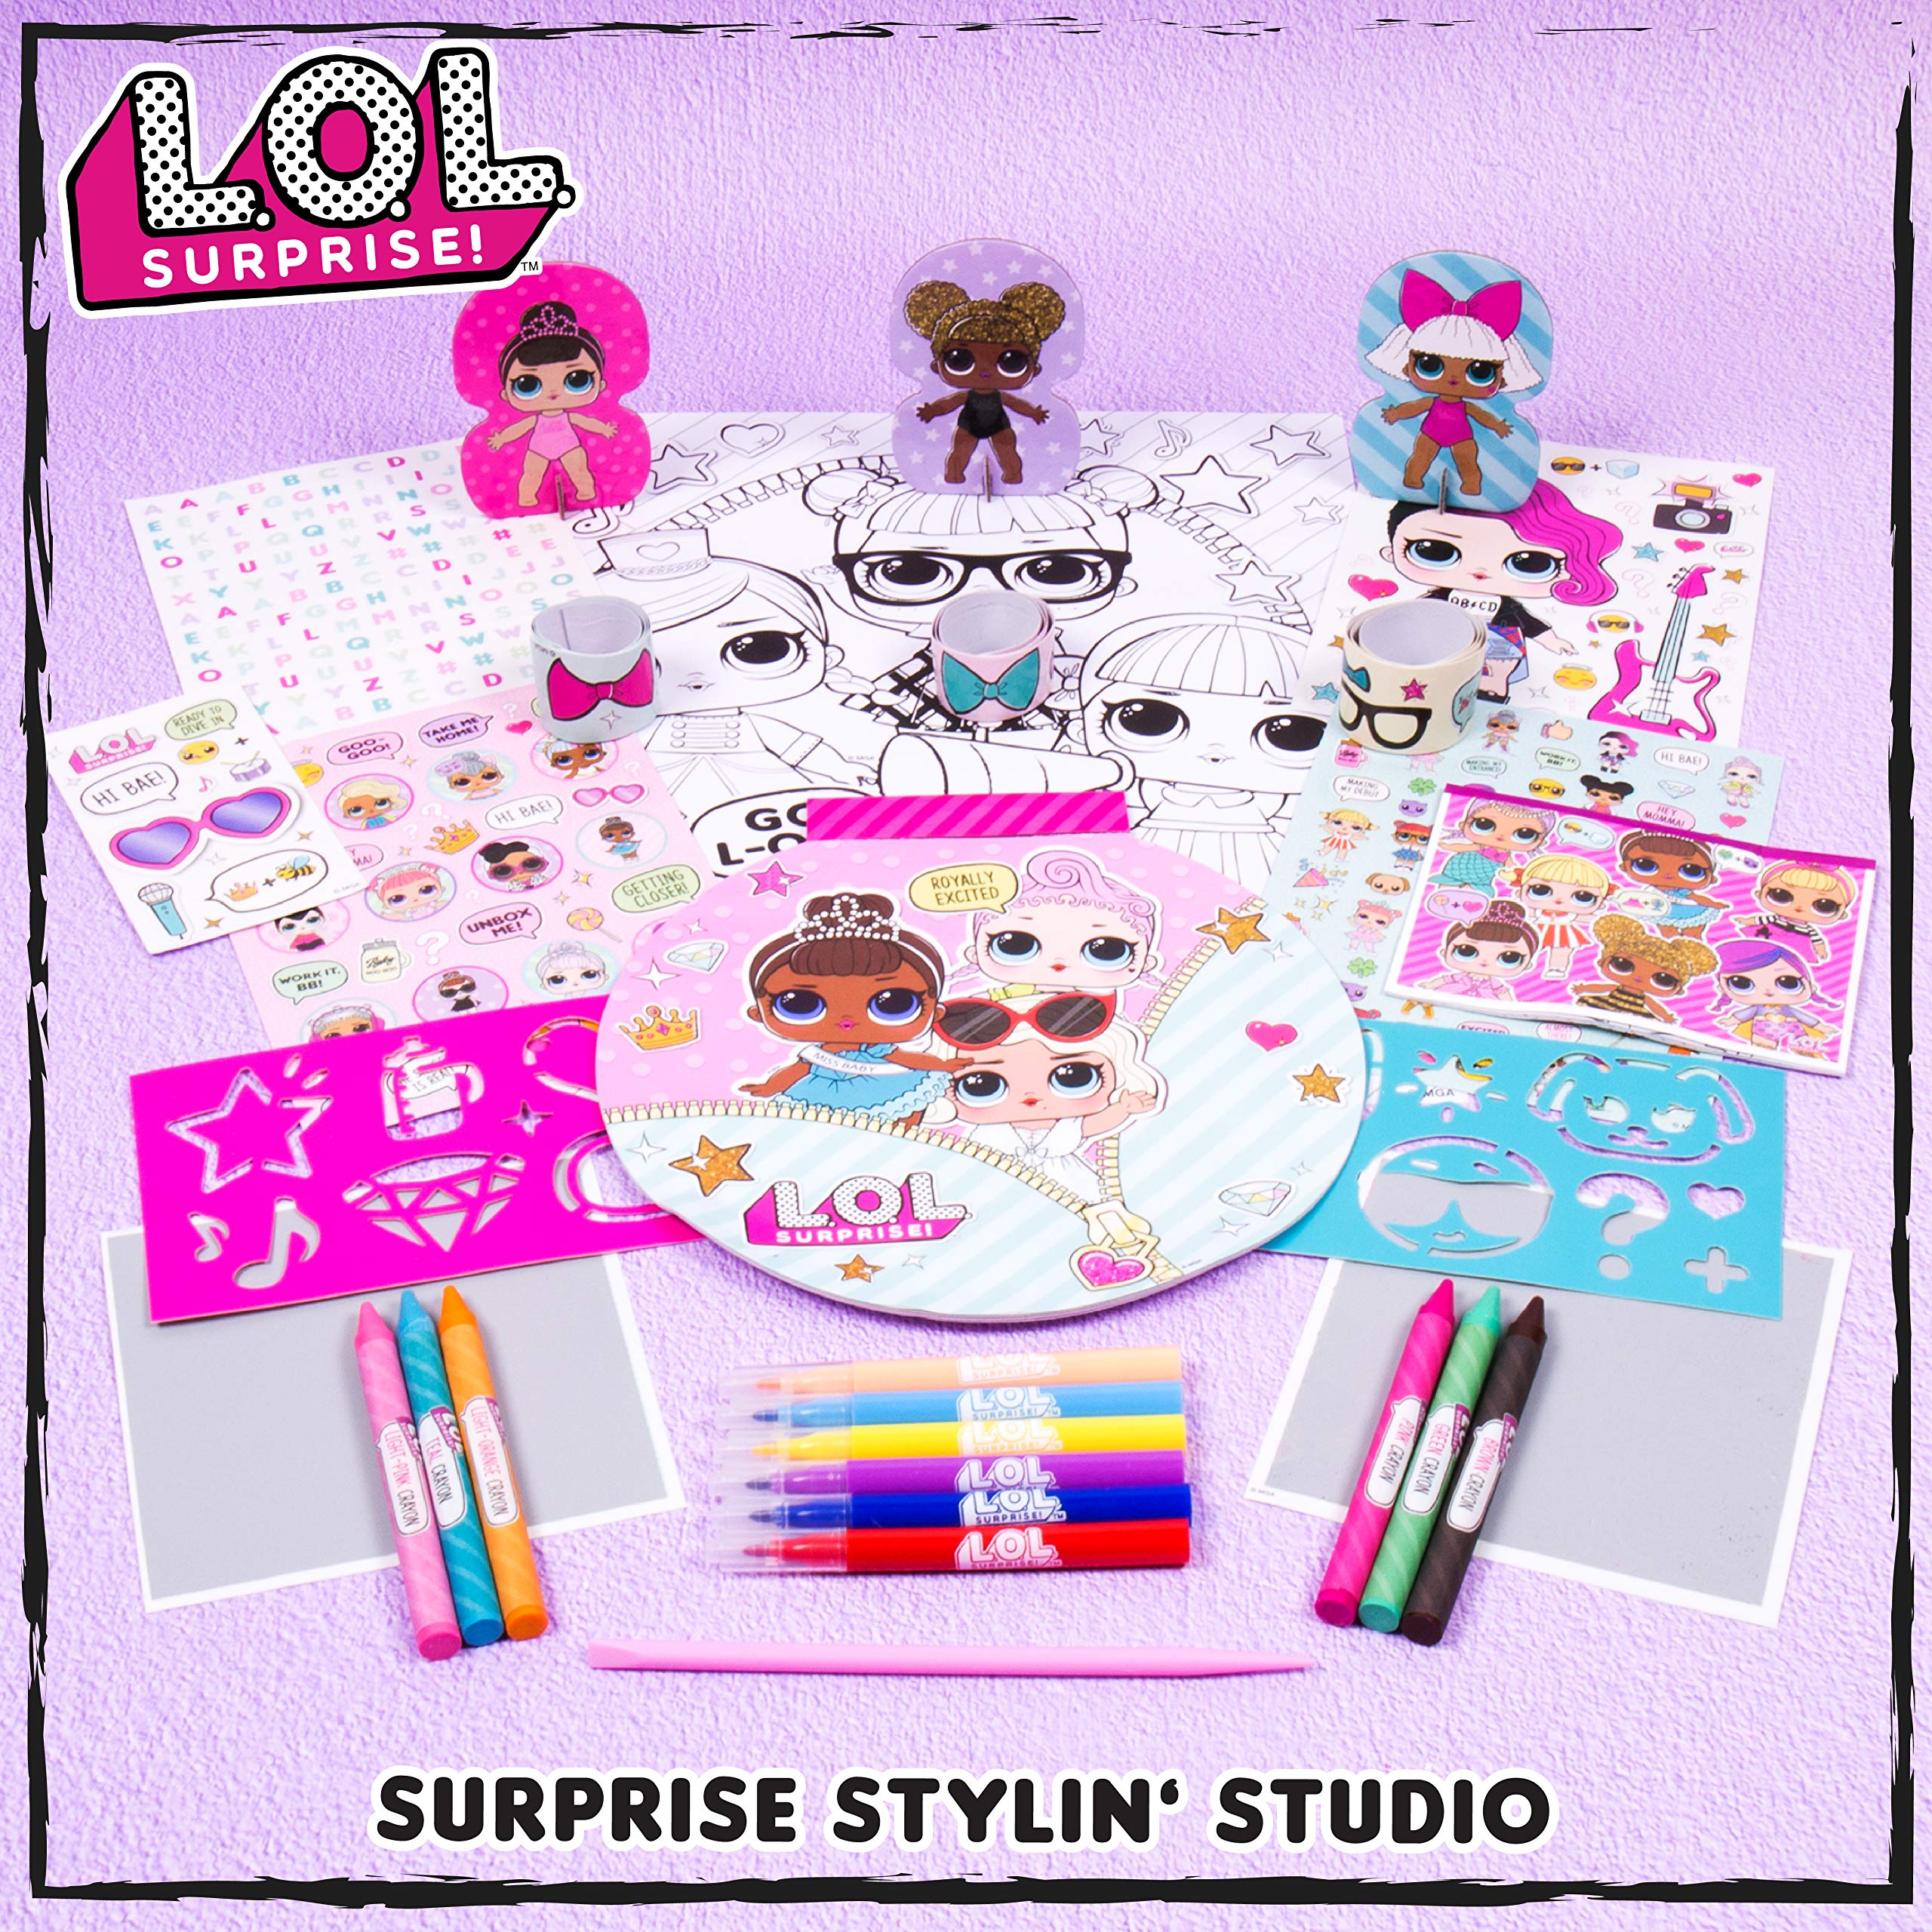 Toys Games Arts Crafts Surprise 14 Fashion Plates Fashion Plates By Horizon Group Usa Fashion Design Activity Kit 7 Crayons Included Make Over 100 Designs L O L 1 Scratch Art Sheet